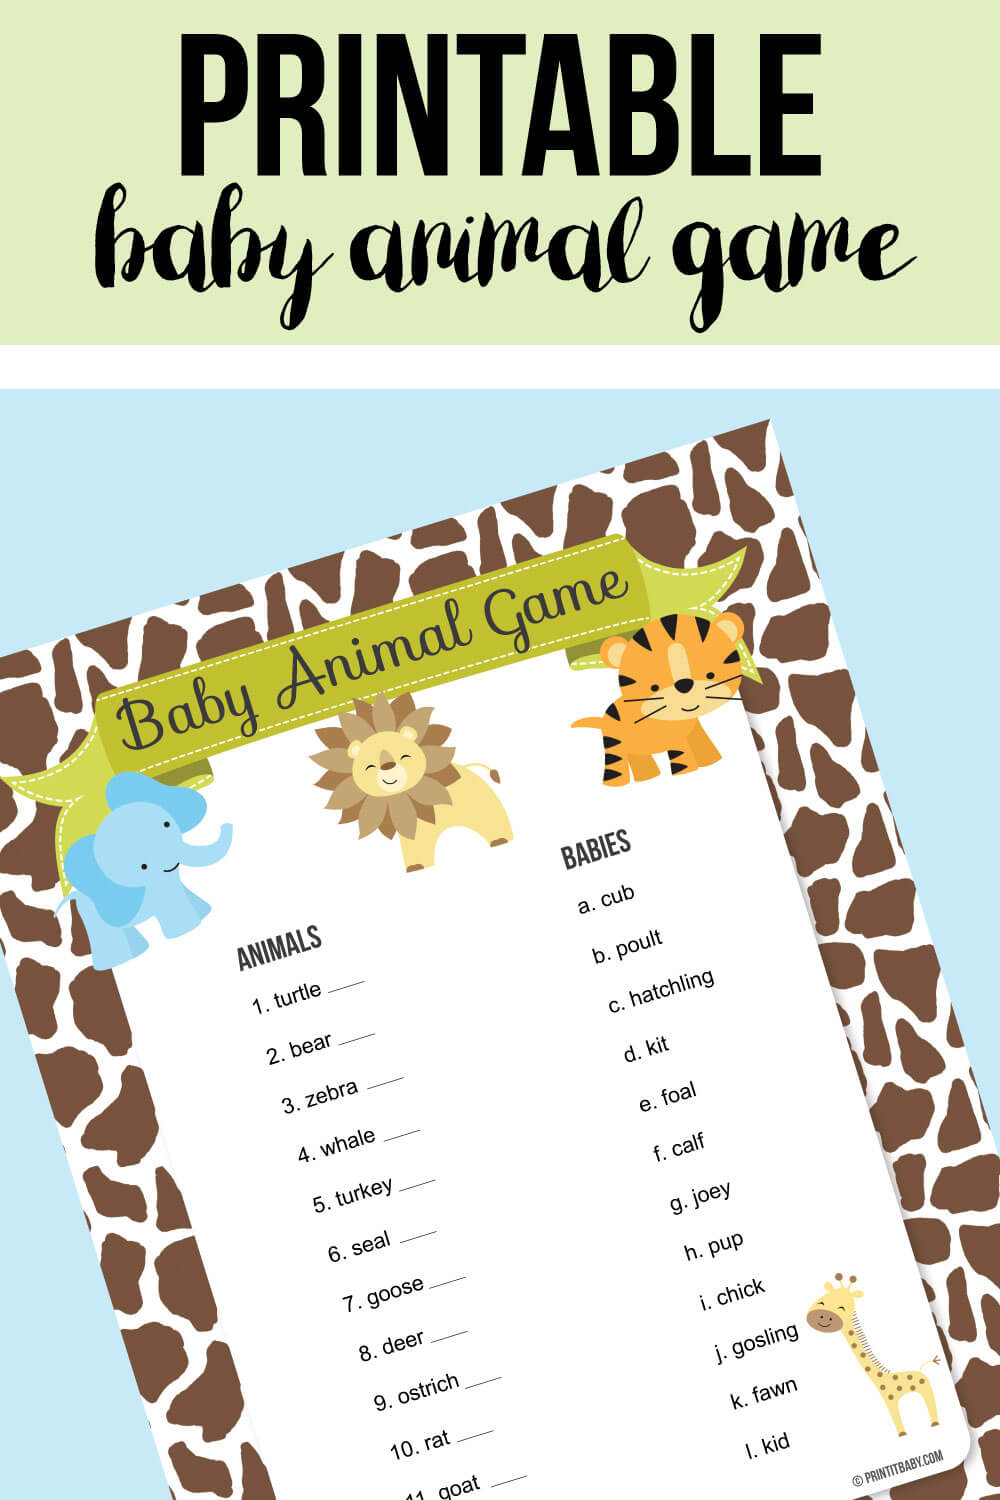 10 Inspiring Adoption Baby Shower Party Ideas ...